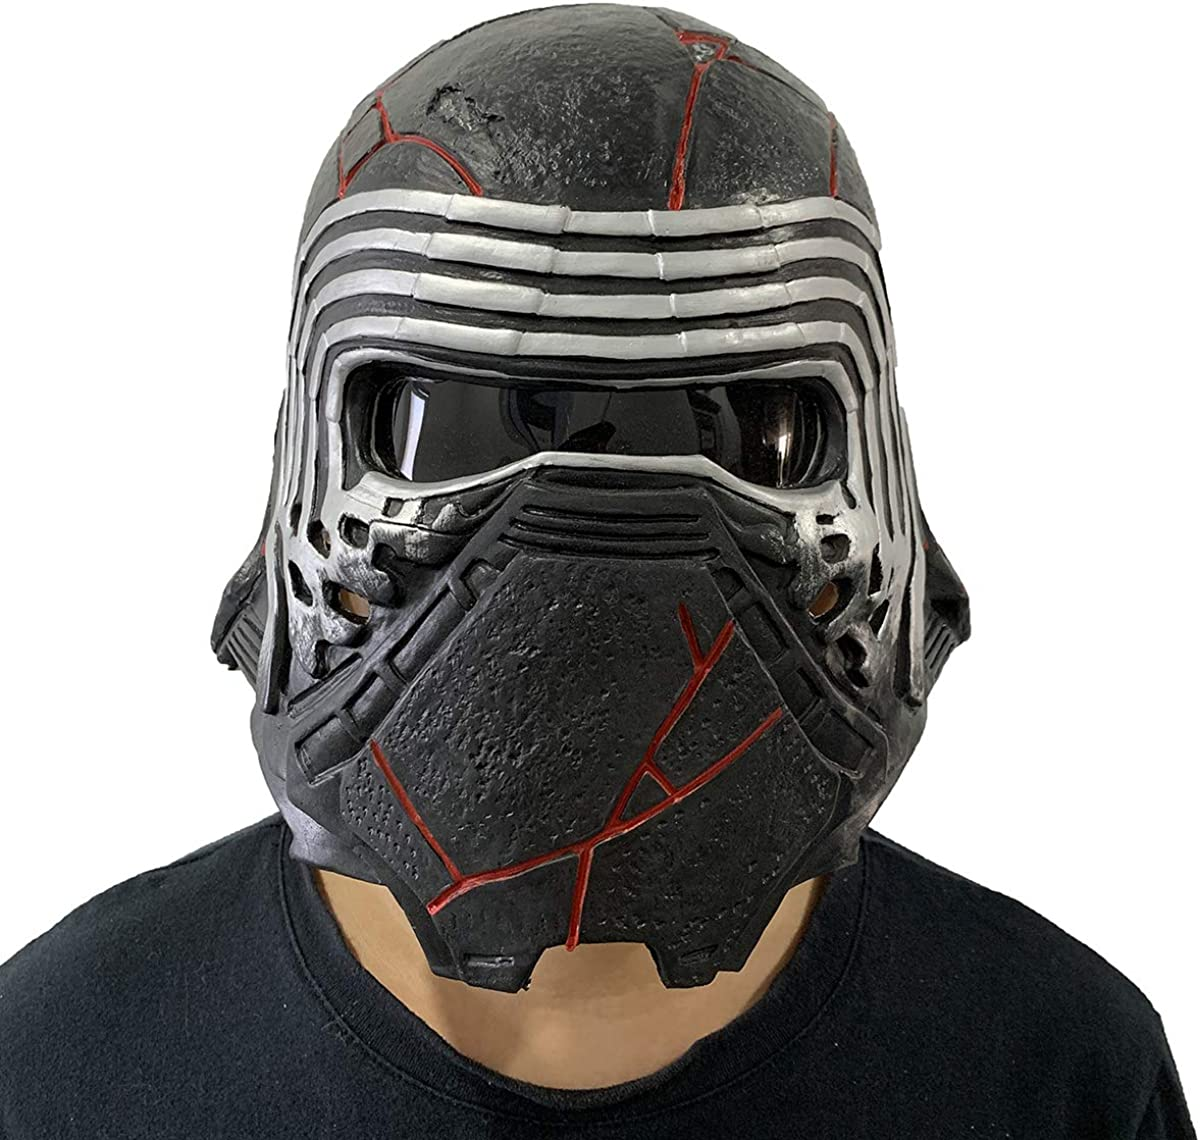 Amazon Com Zmj Kylo Ren Helmet Mask The Rise Of Skywalker Latex Full Face Costume Props Cosplay Accessories Black Clothing